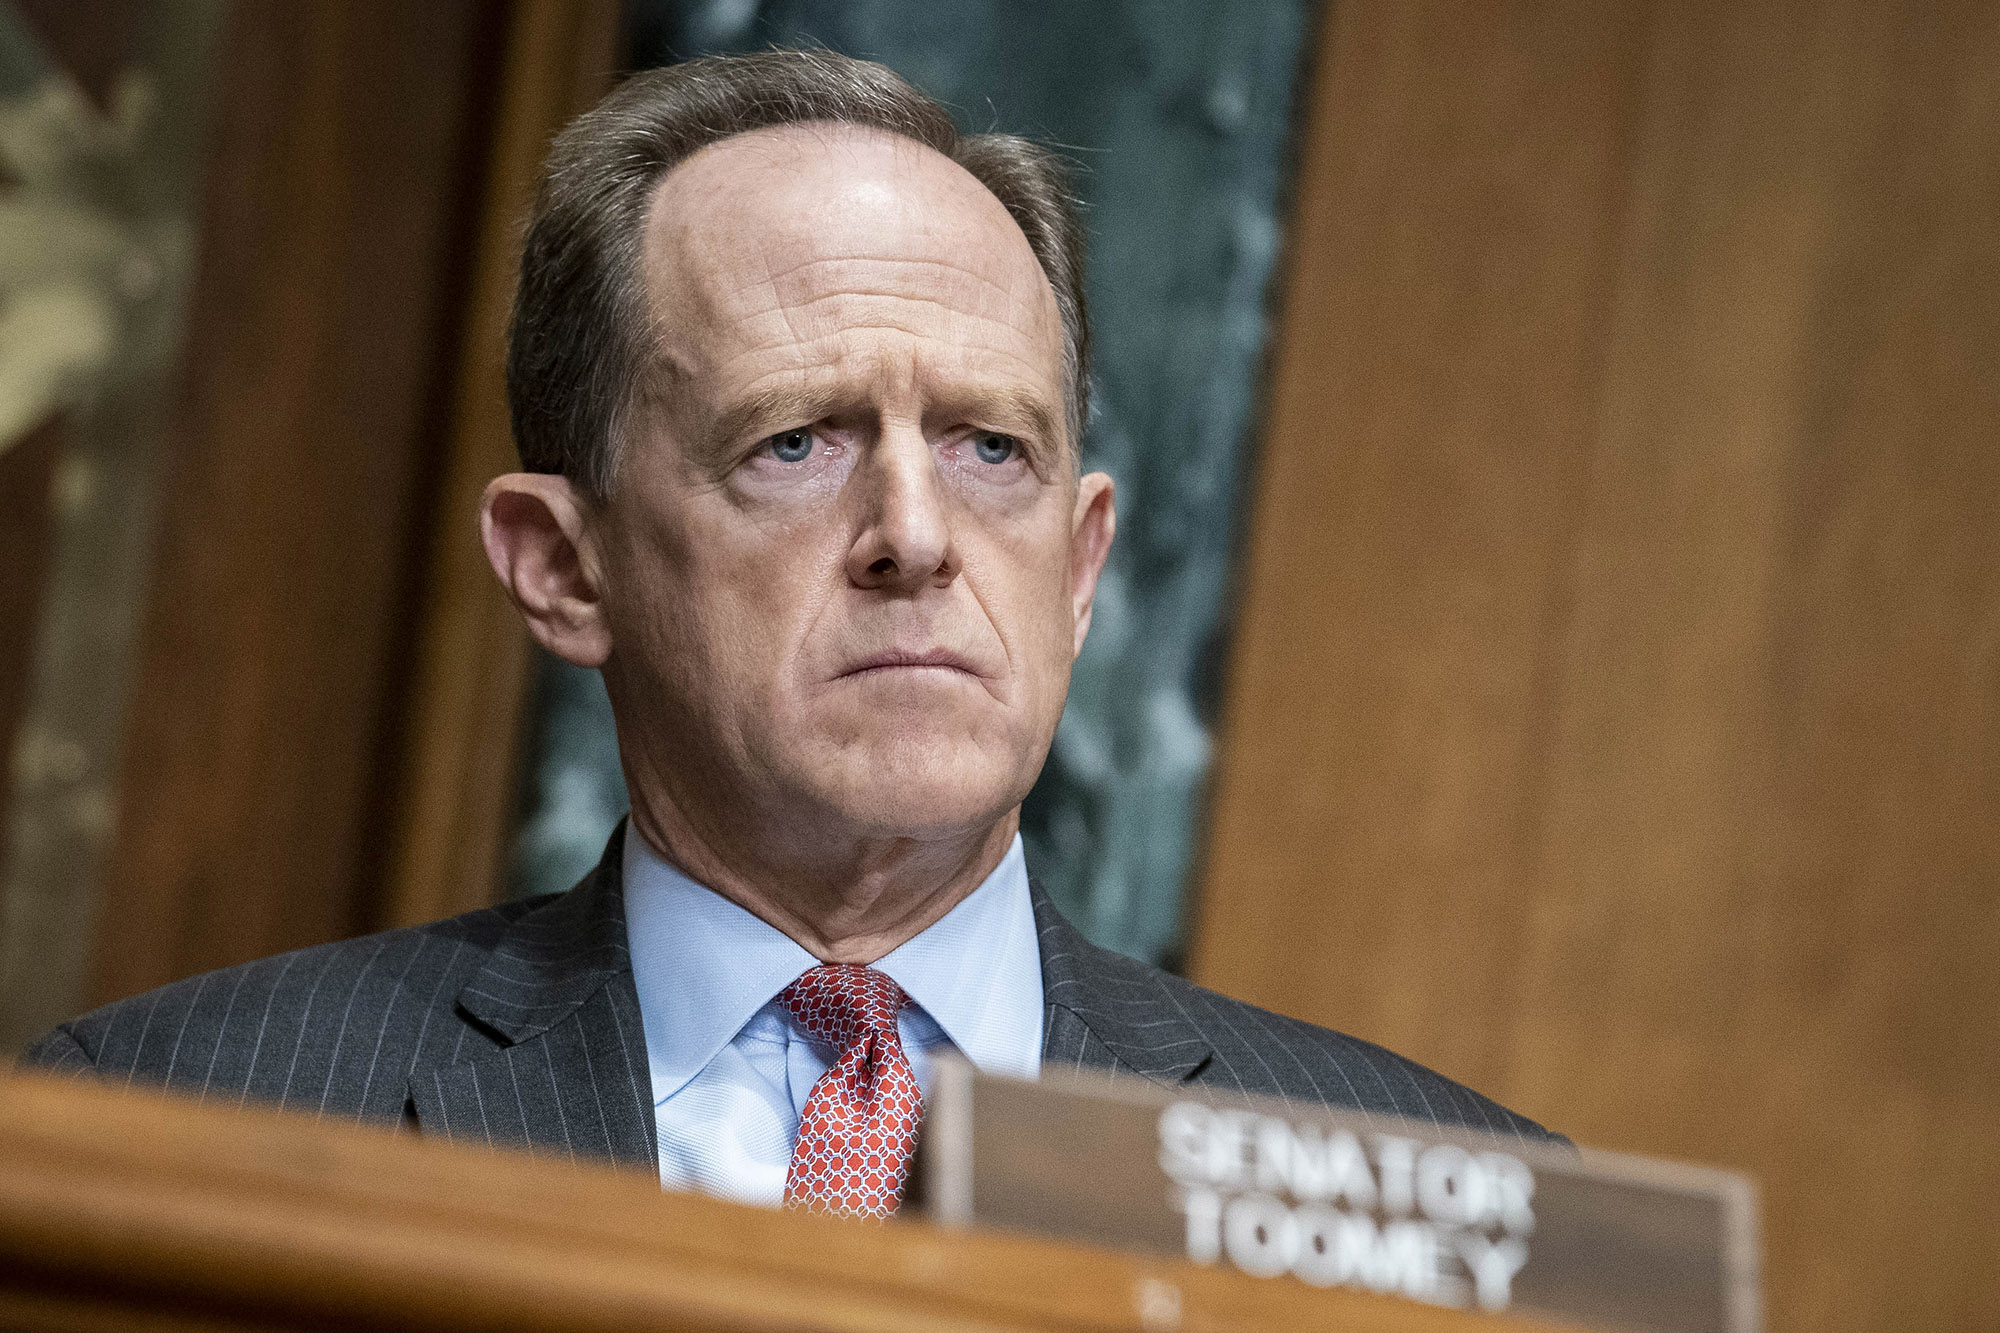 Senator Pat Toomey, a Republican from Pennsylvania, listens during a Congressional Oversight Committee hearing in Washington DC, on Thursday, December 10.